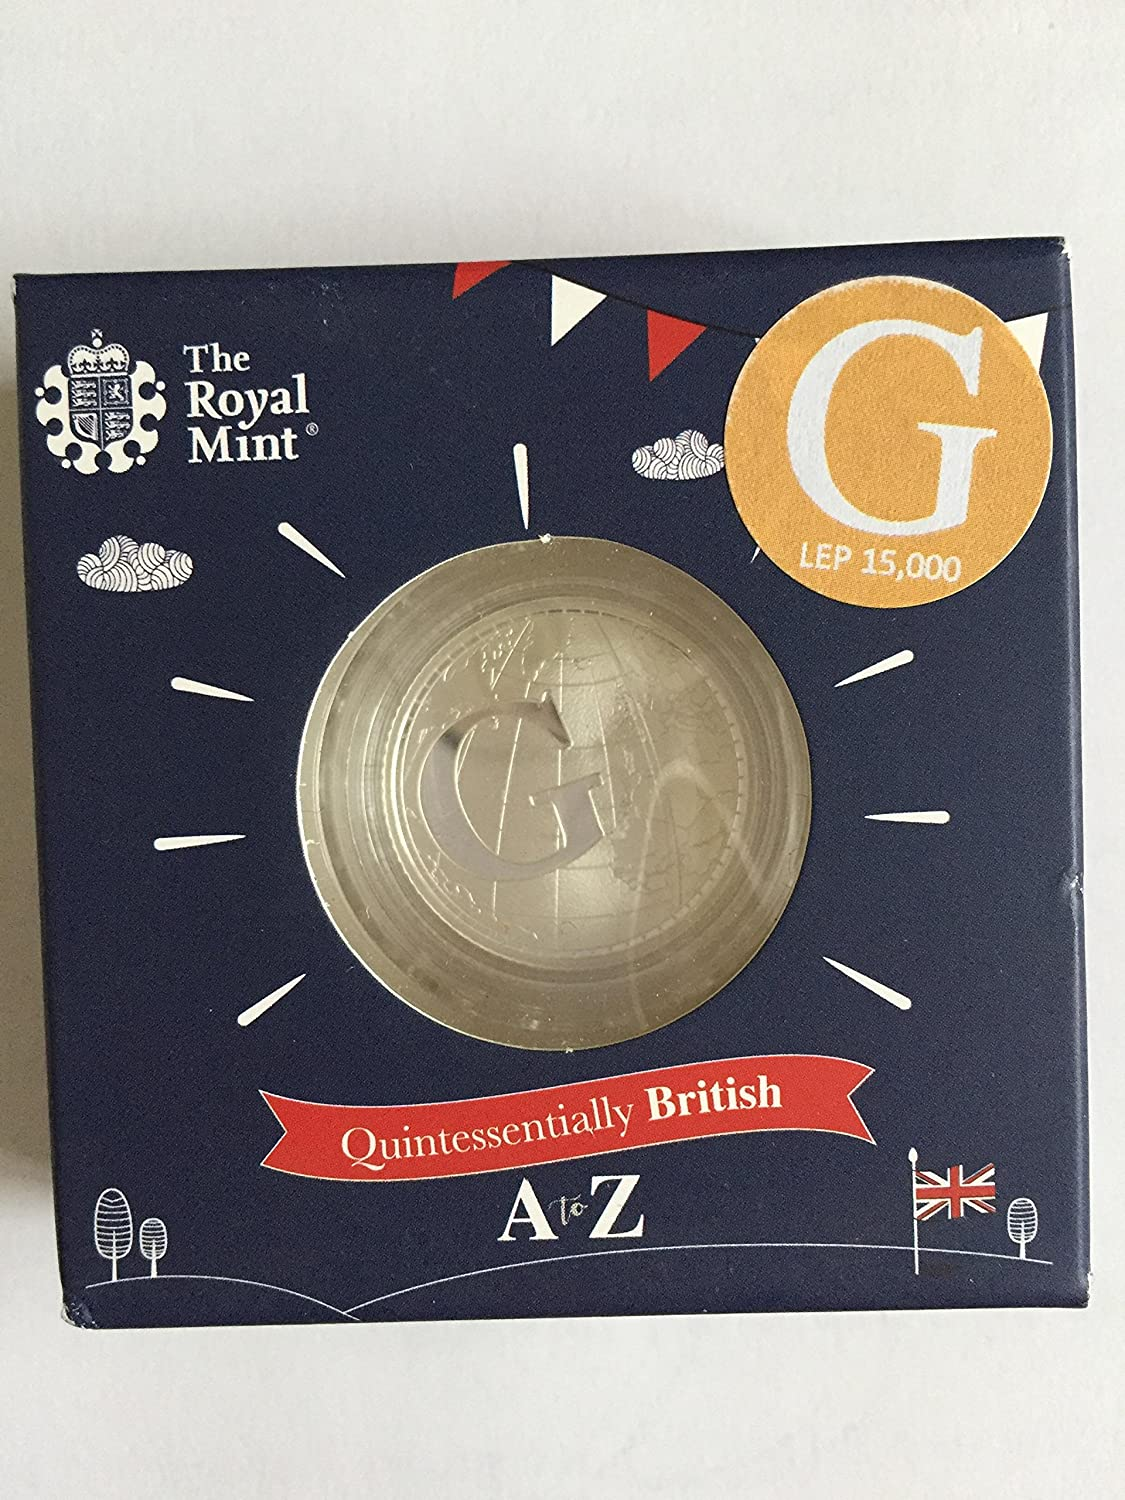 2018 letter G 10p Silver Proof Coin by The Royal Mint